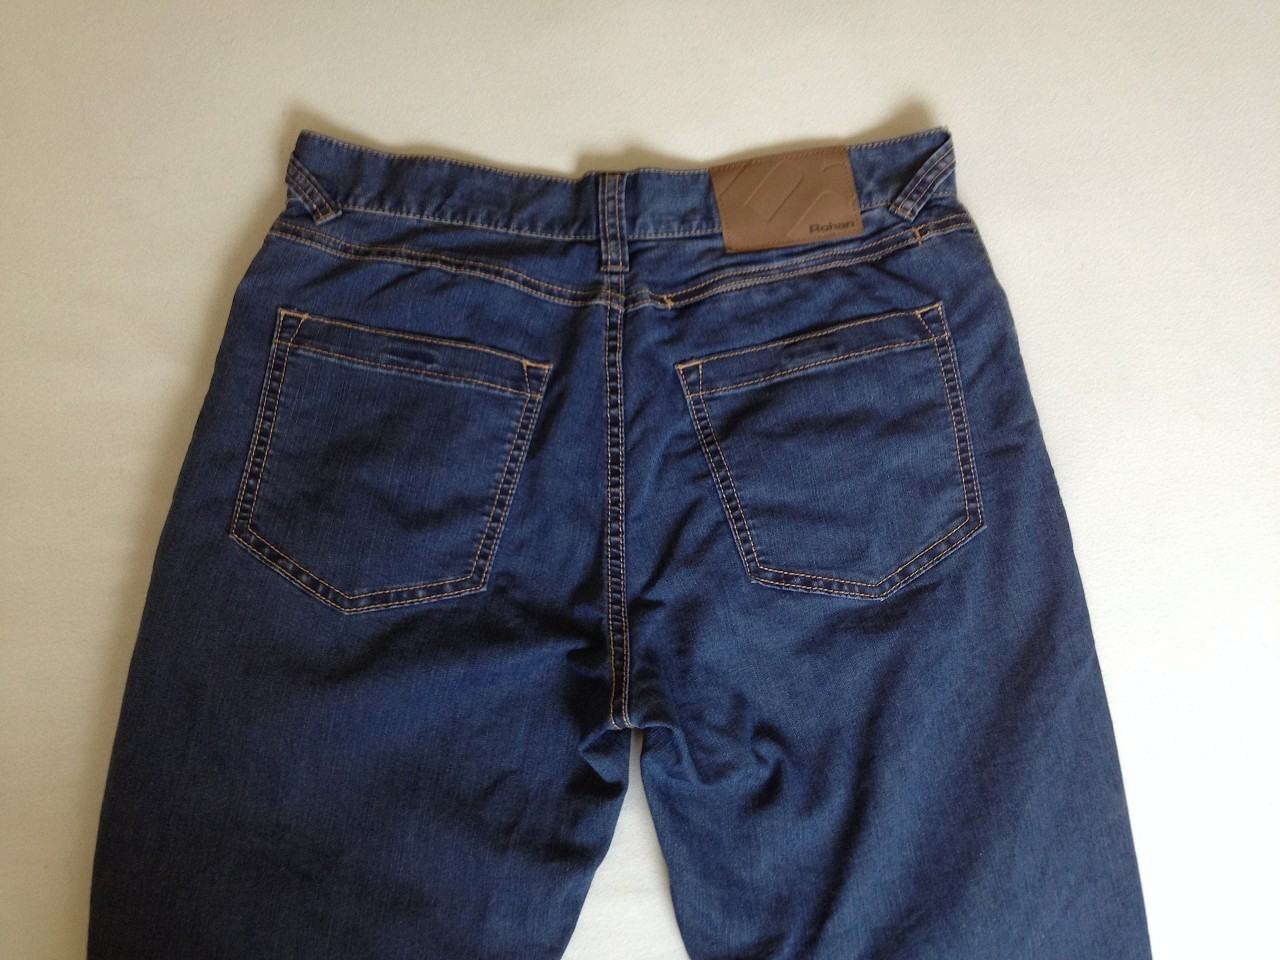 Rohan Jeans Plus back